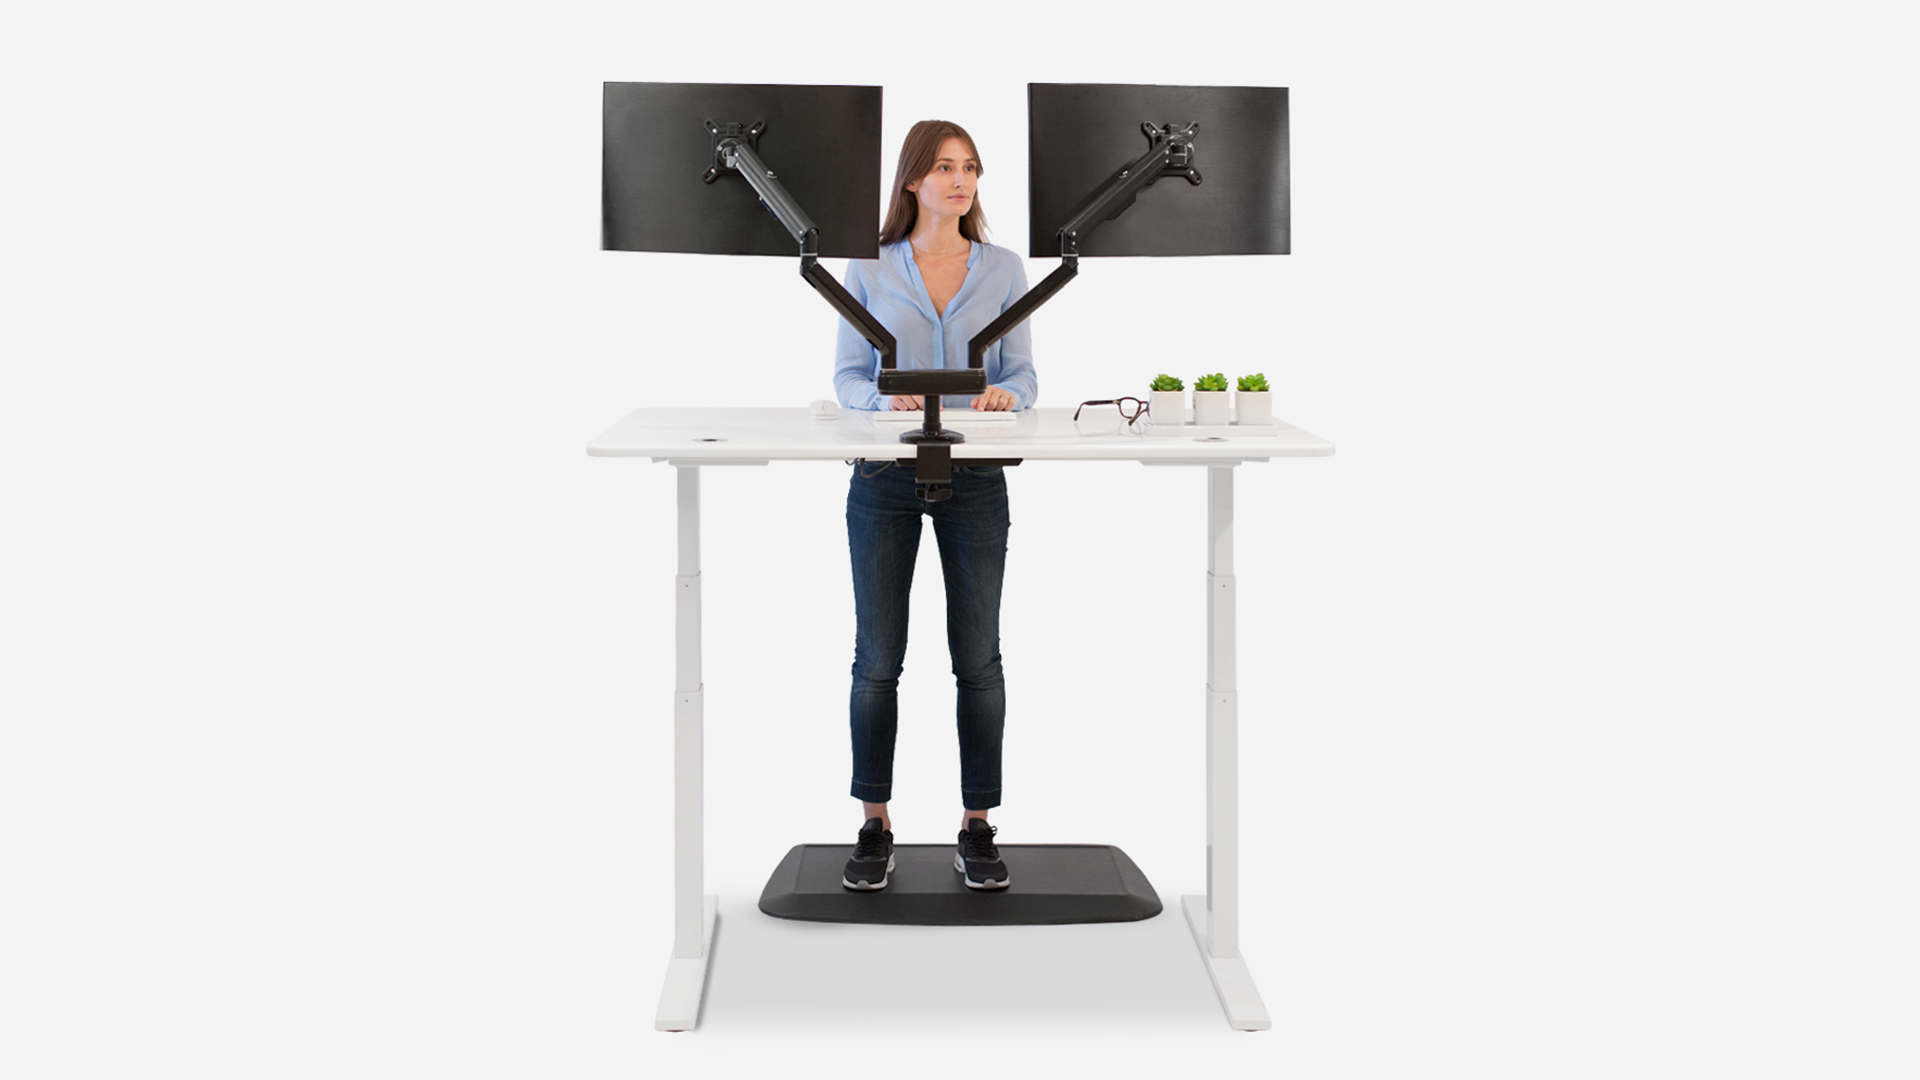 Why should you use an anti fatigue mat for your standing desk